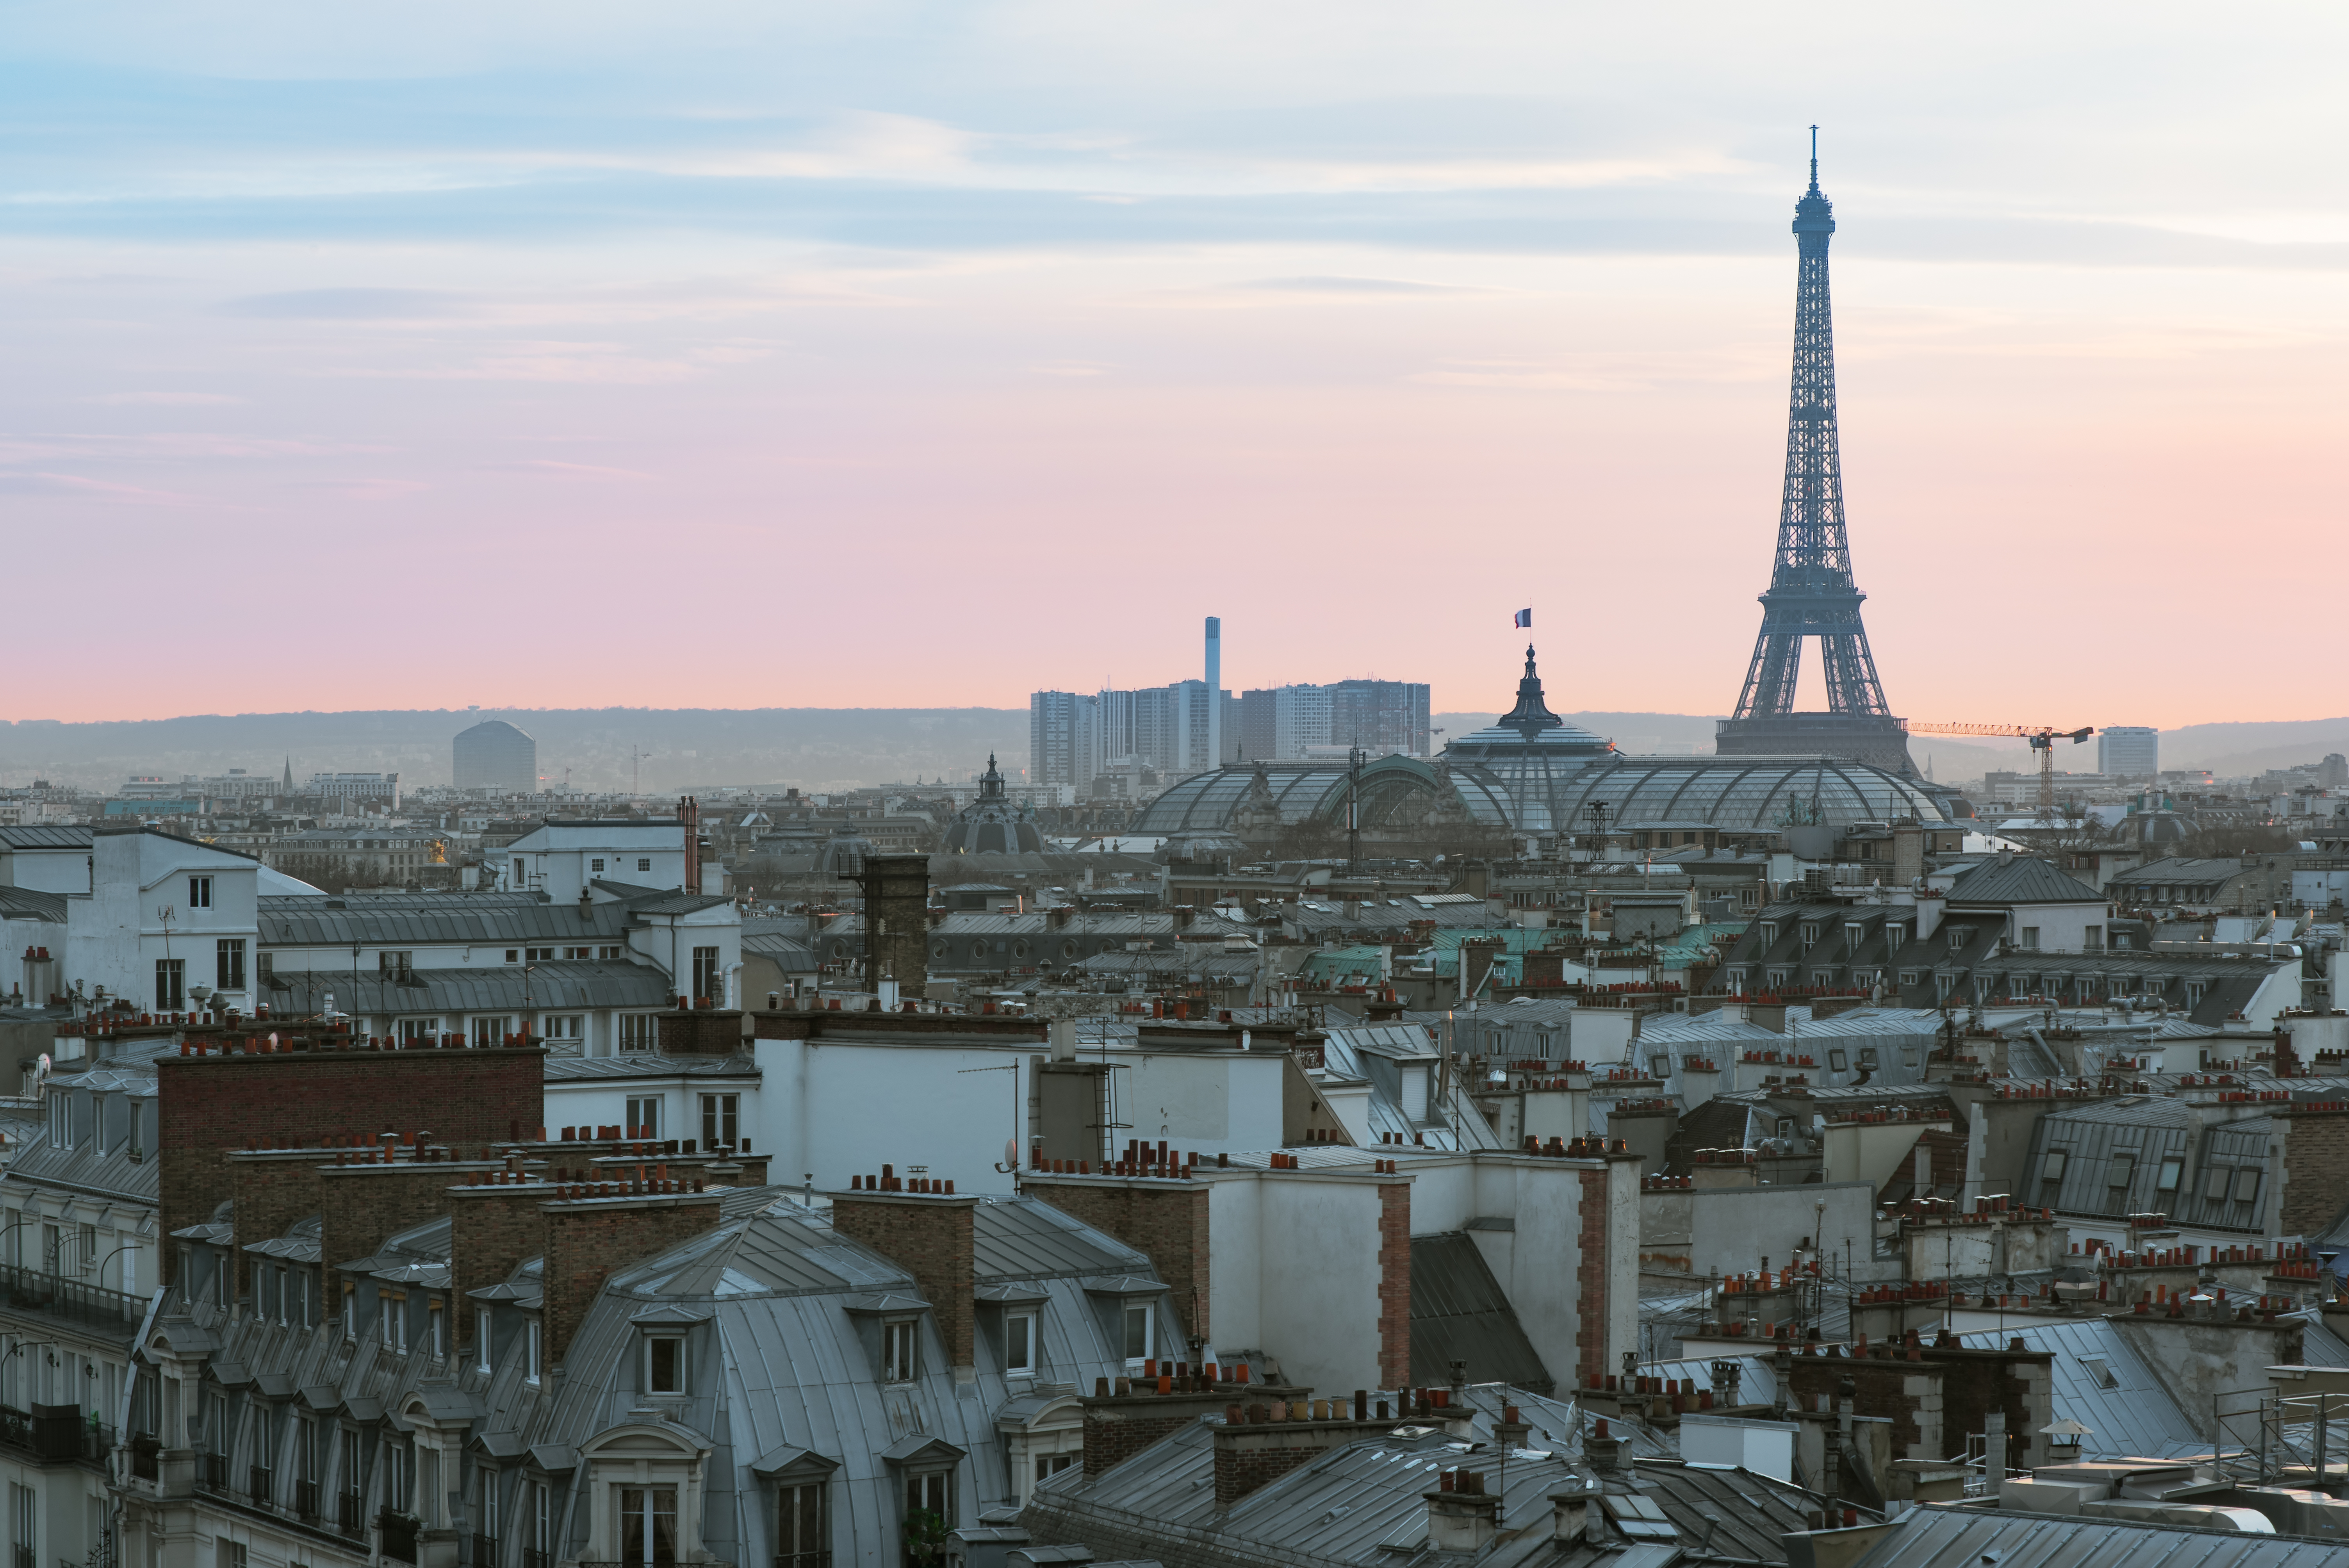 An aerial view of the city of Paris. There are various city buildings in the foreground. In the distance is the Eiffel Tower. There is a sunset in the sky.